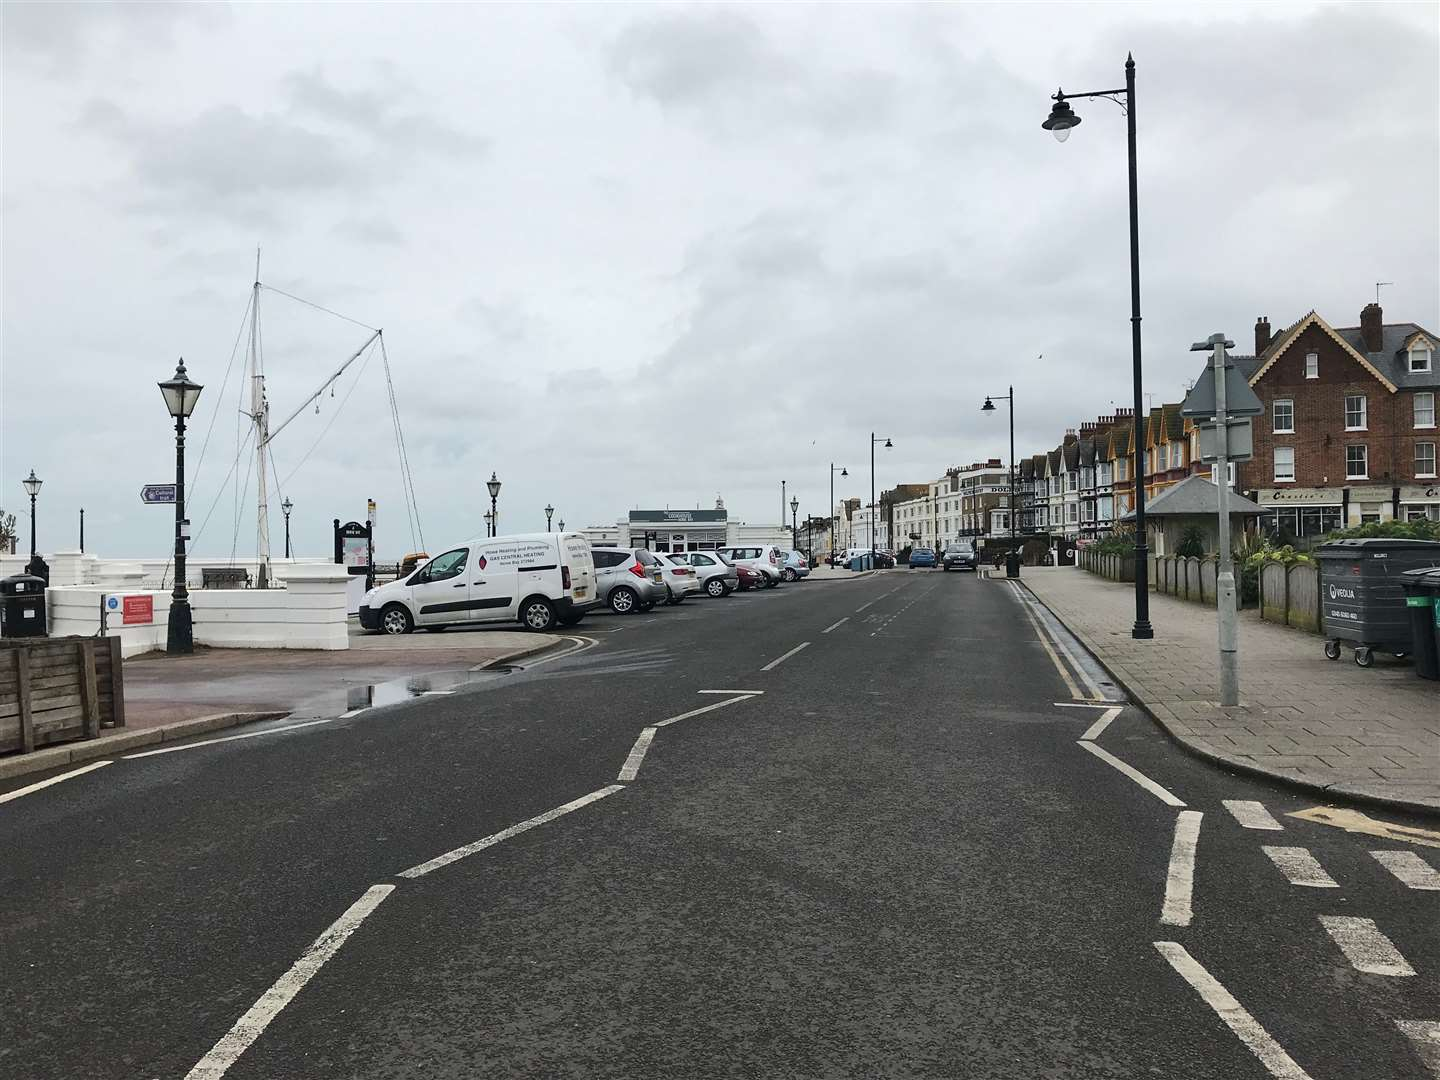 The seafront stretch between Station Road and Pier Avenue could be pedestrianised